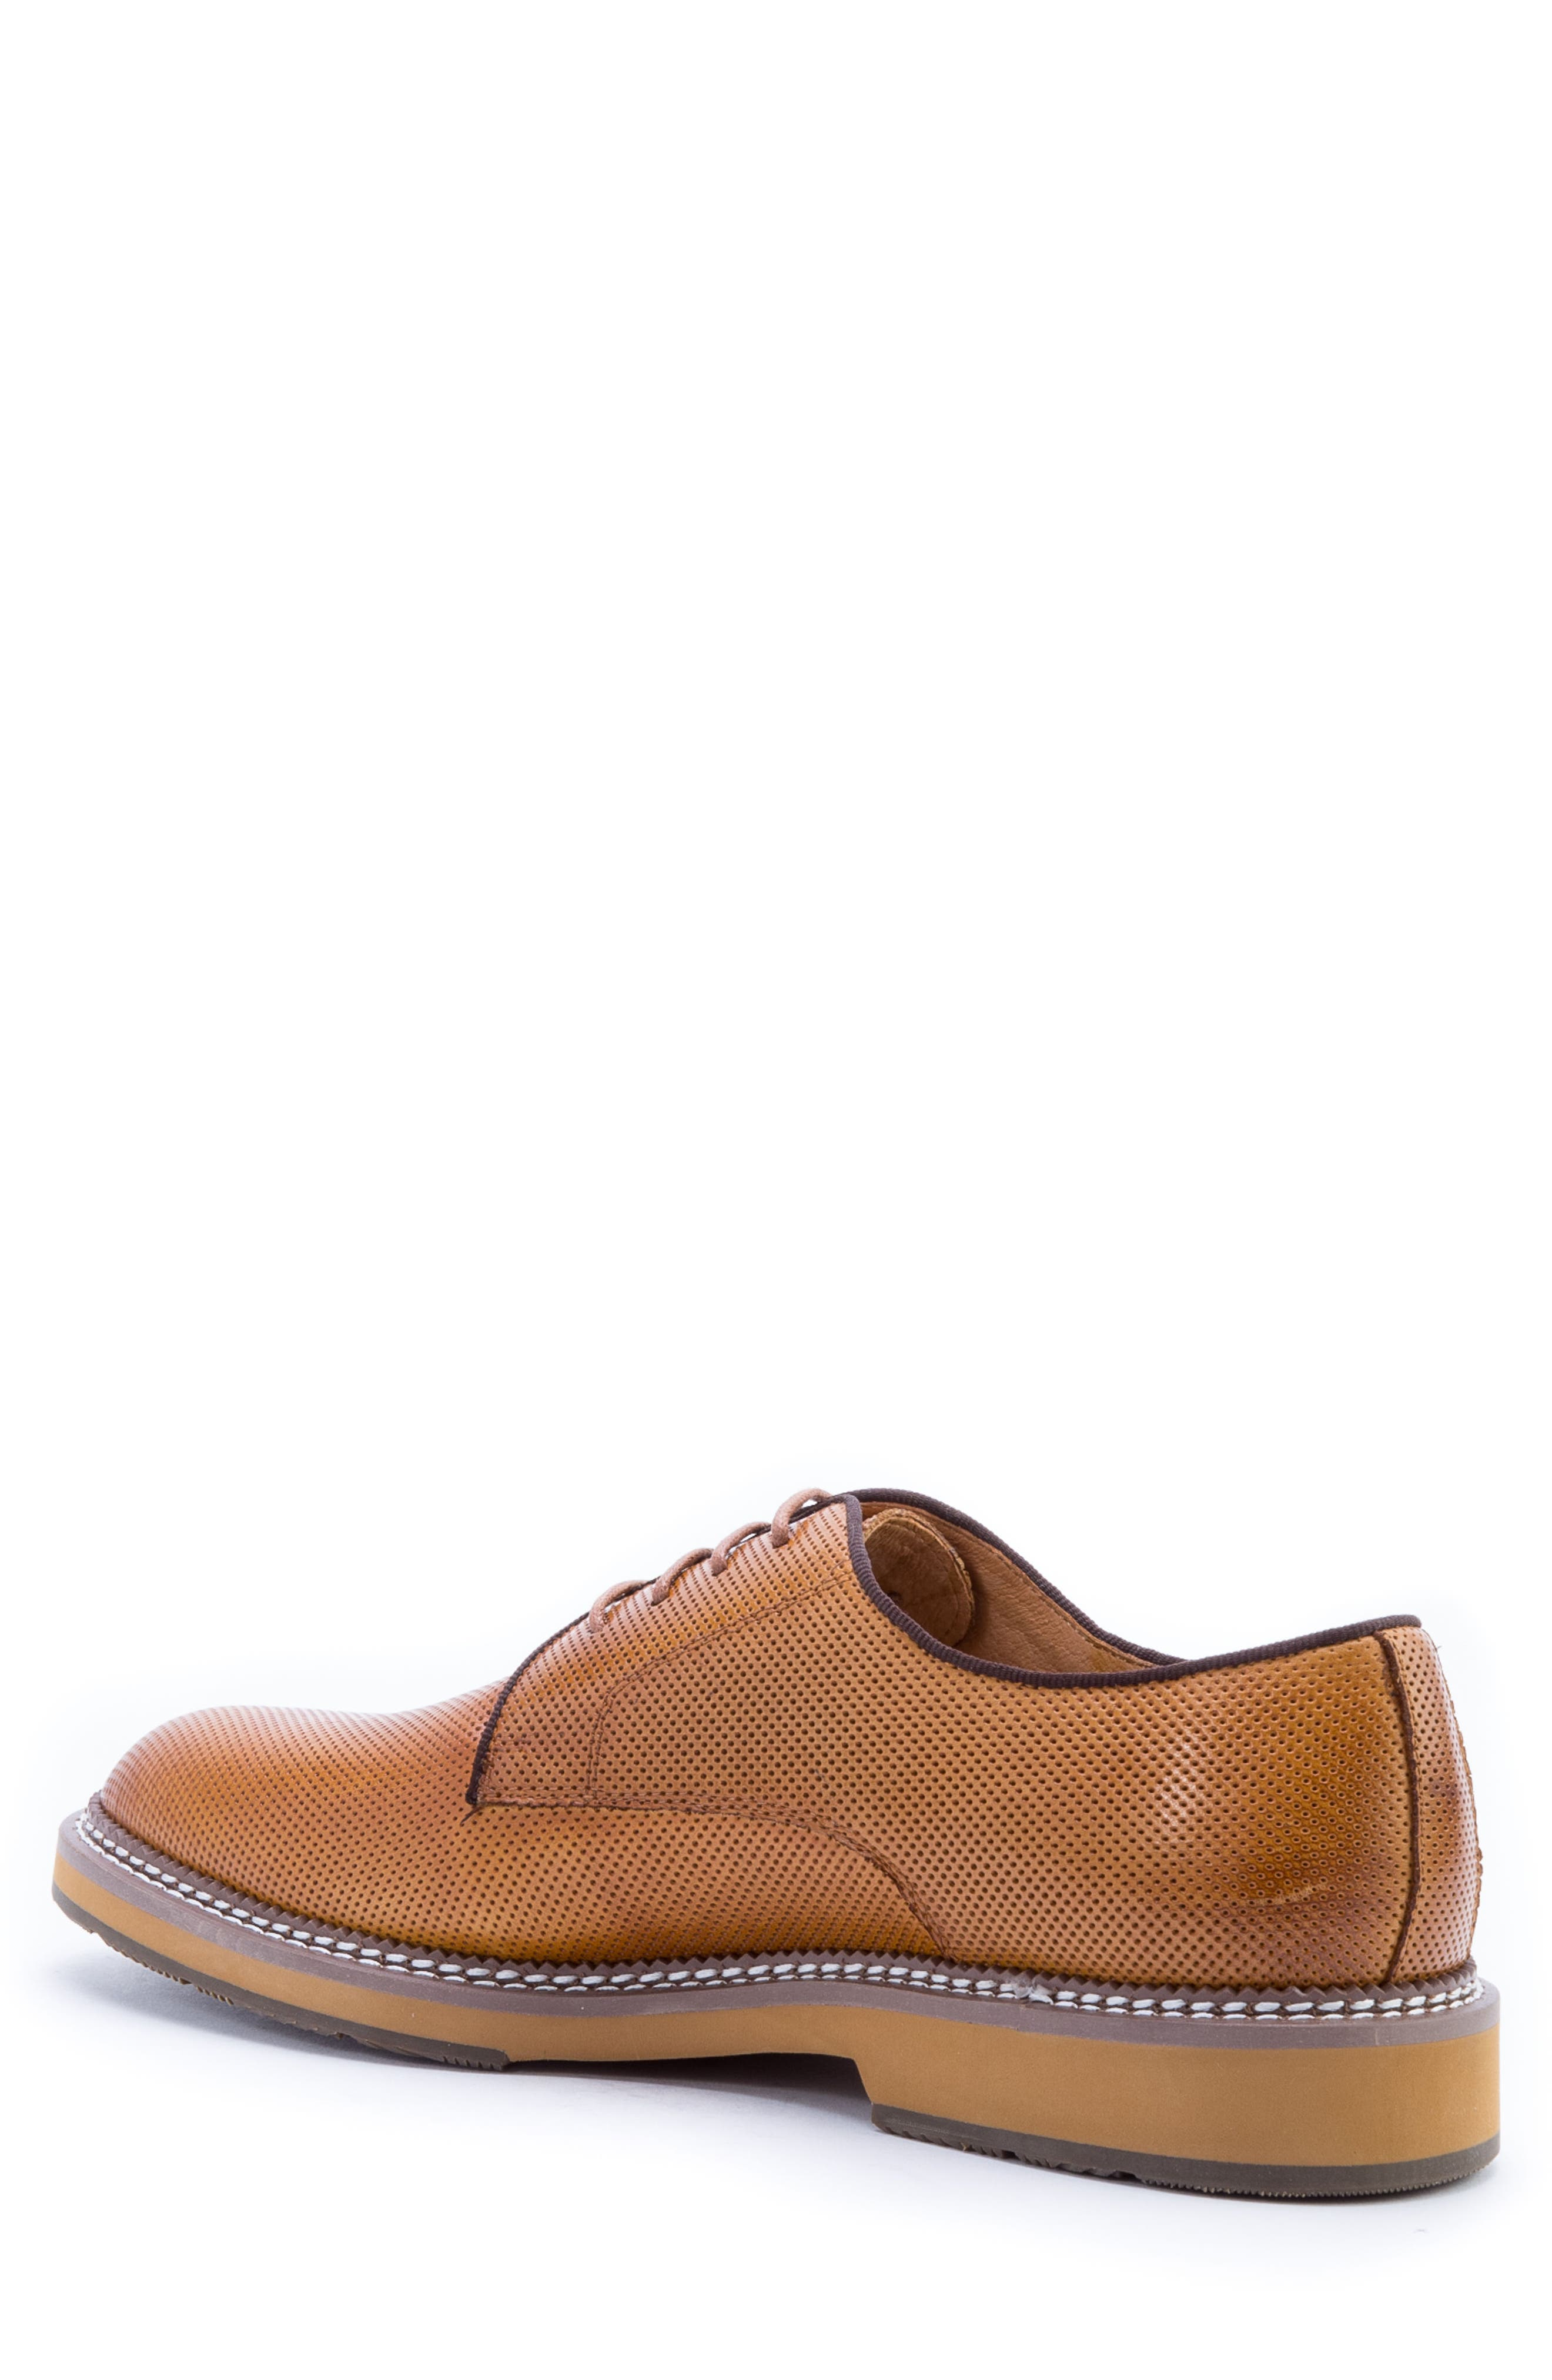 Monticello Perforated Plain Toe Derby,                             Alternate thumbnail 2, color,                             Cognac Leather